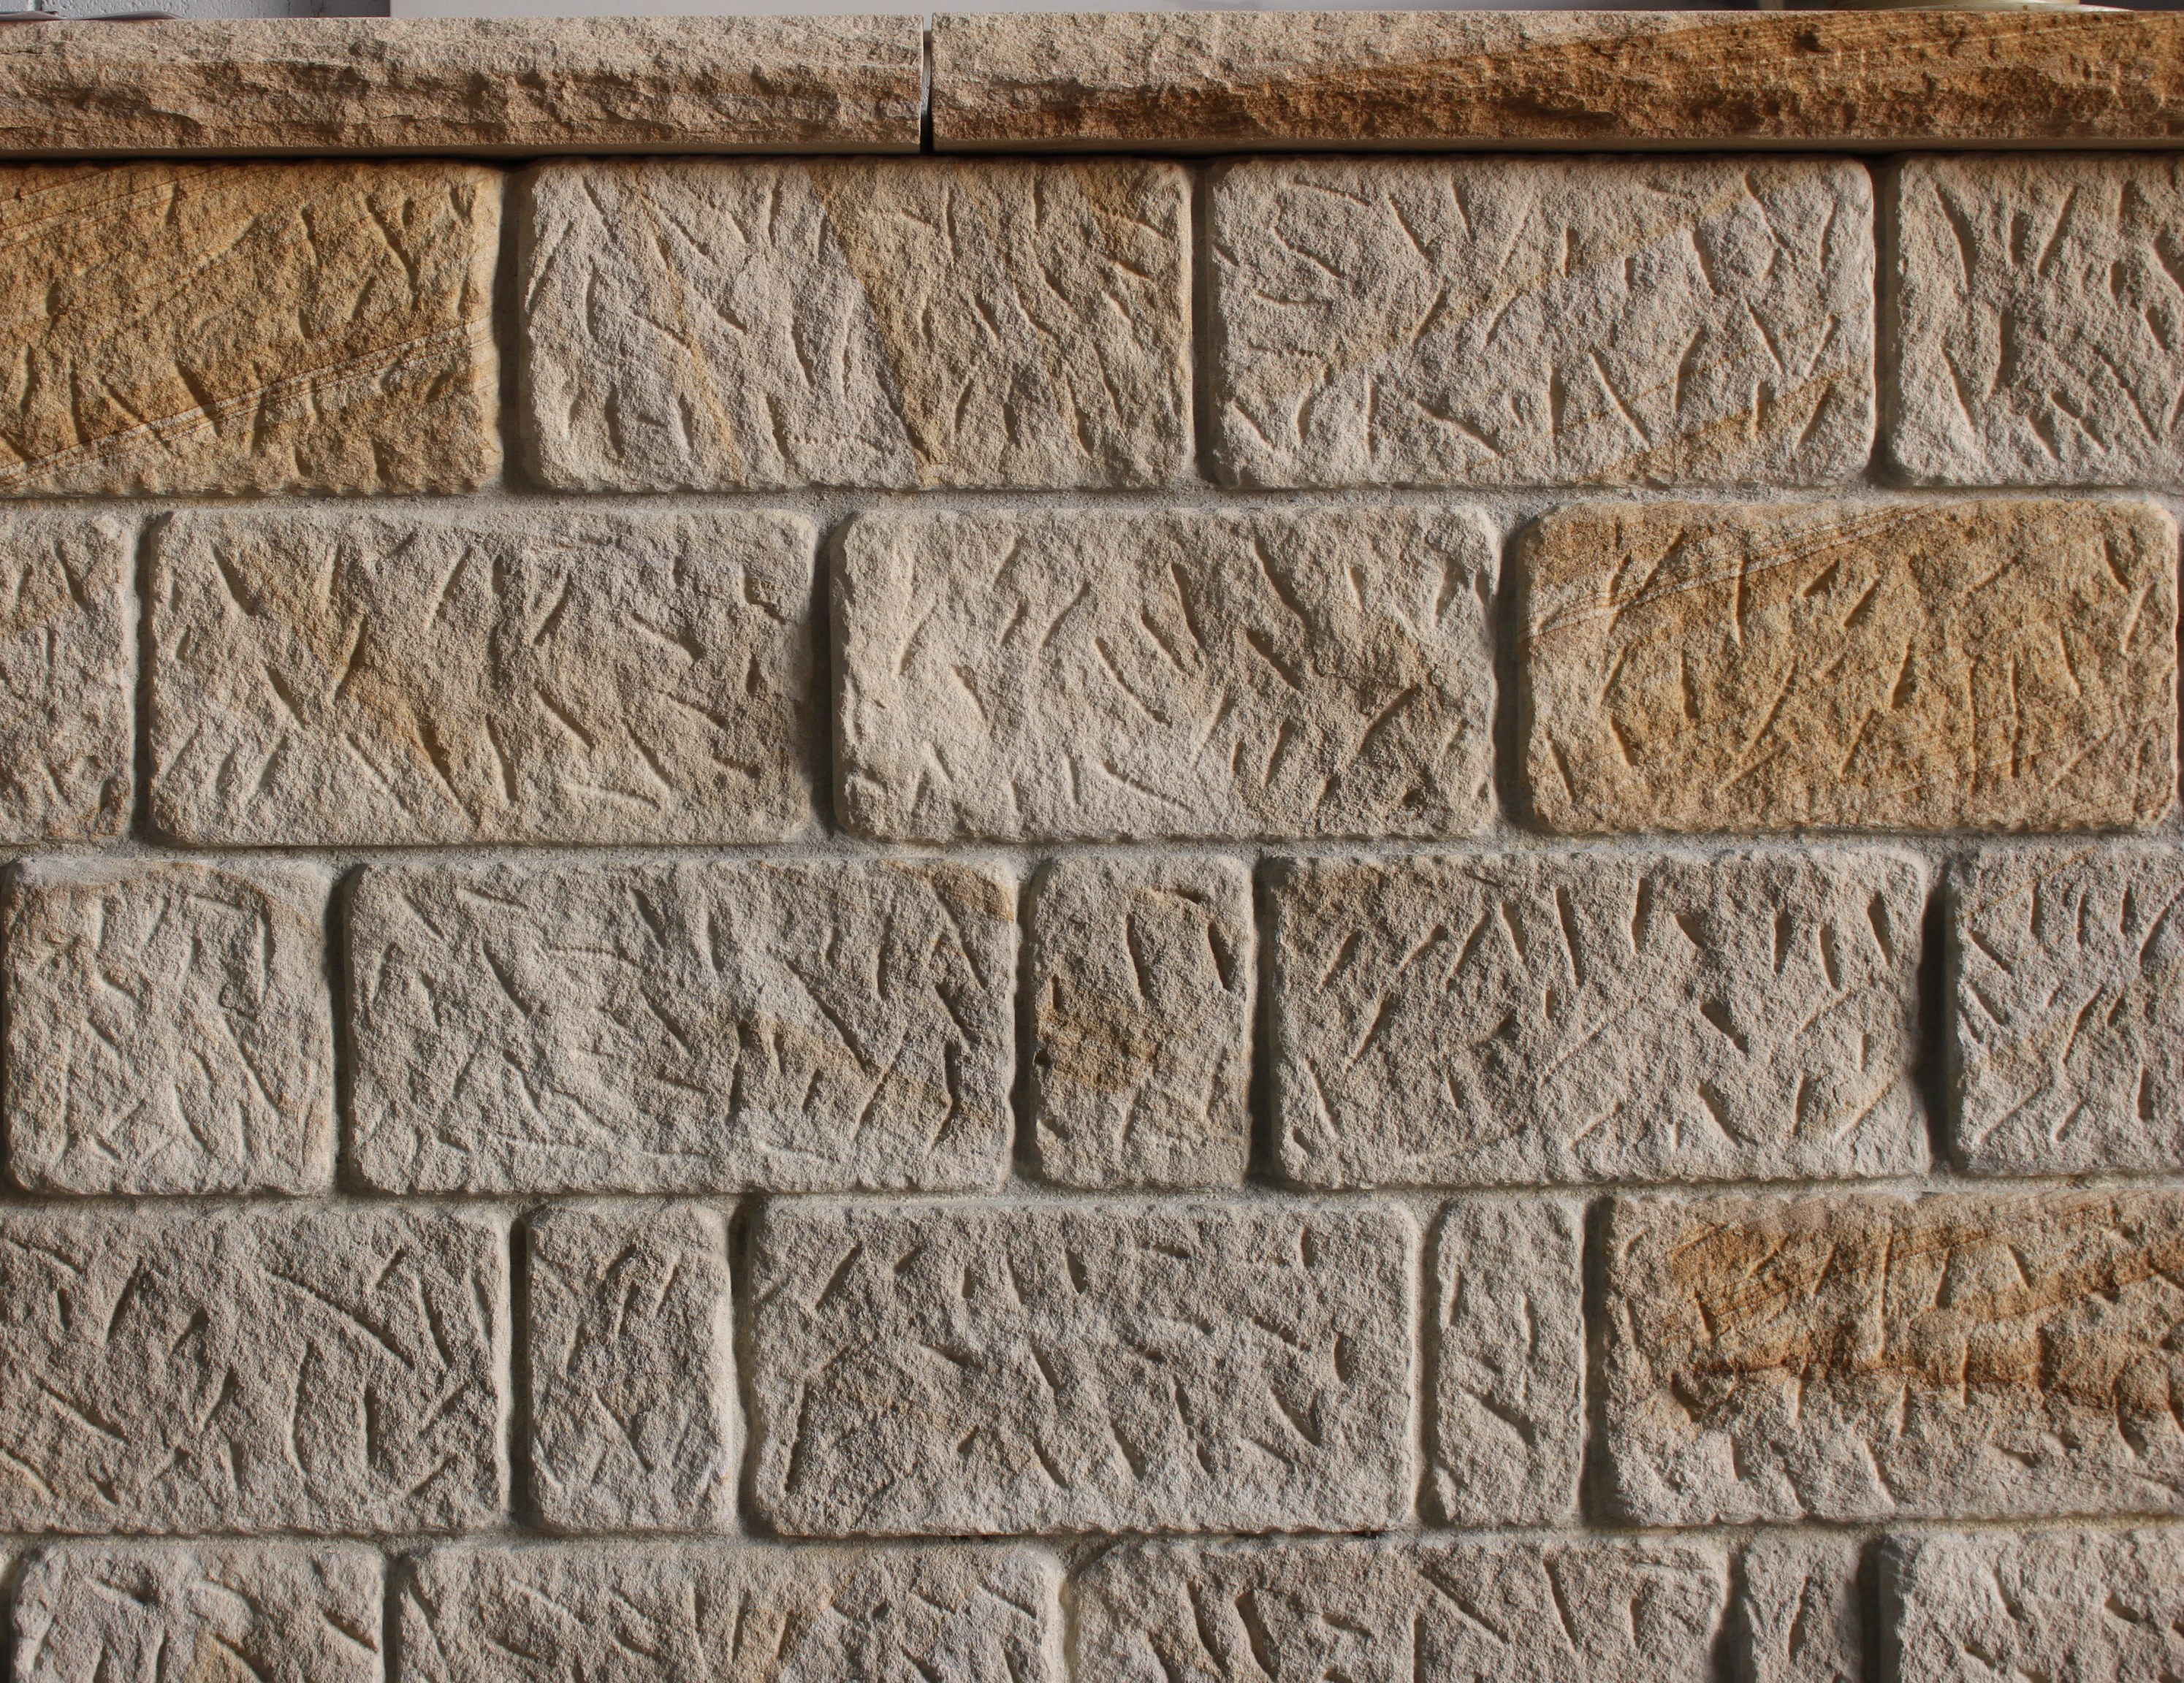 Sandstone used in a walling project